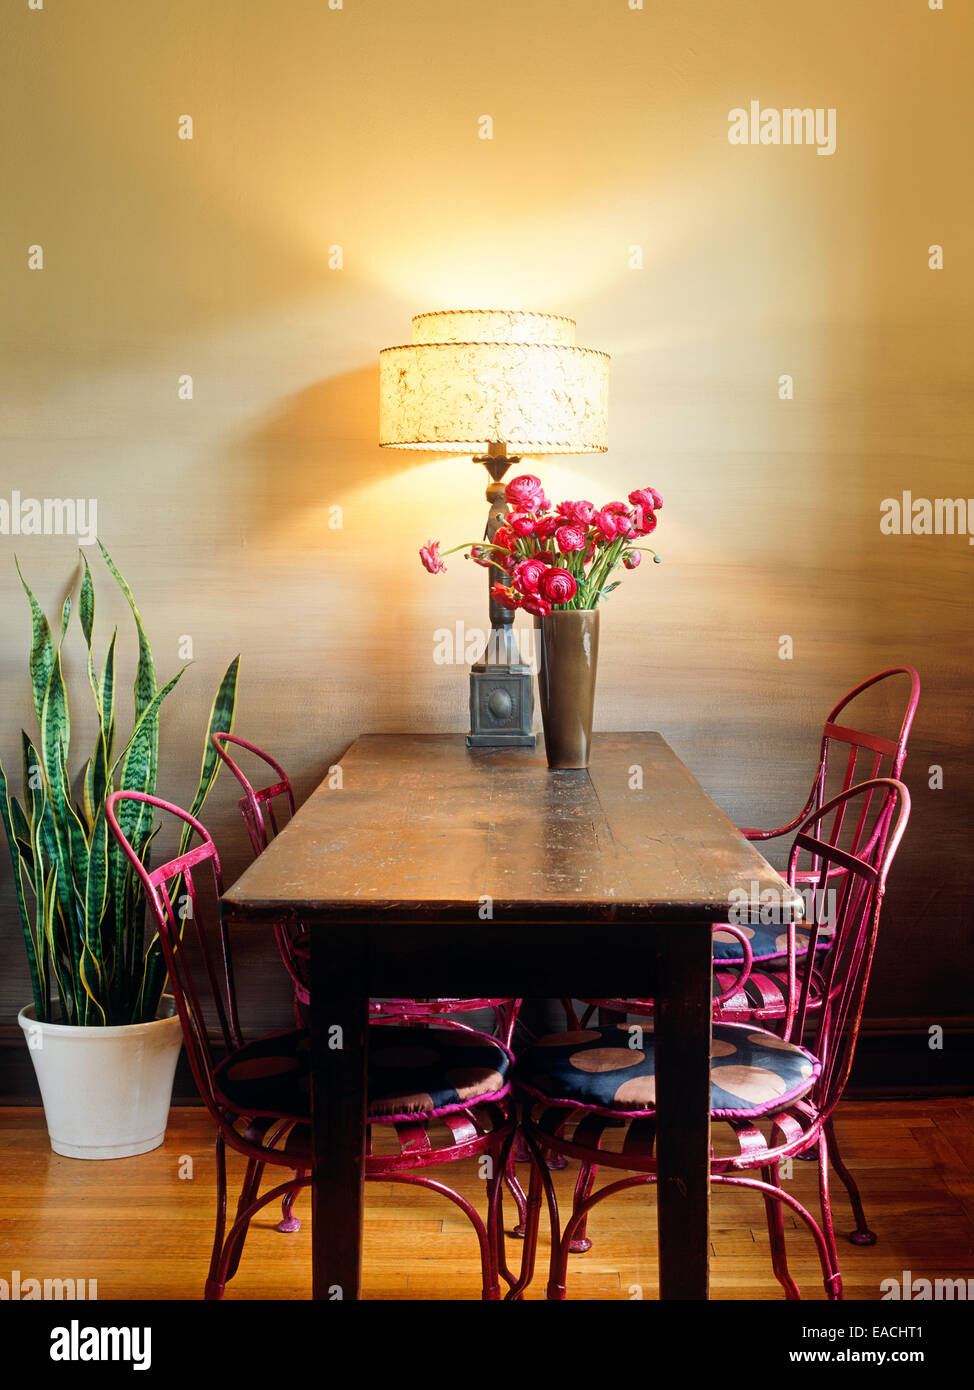 dining room with table and chairs - Stock Image